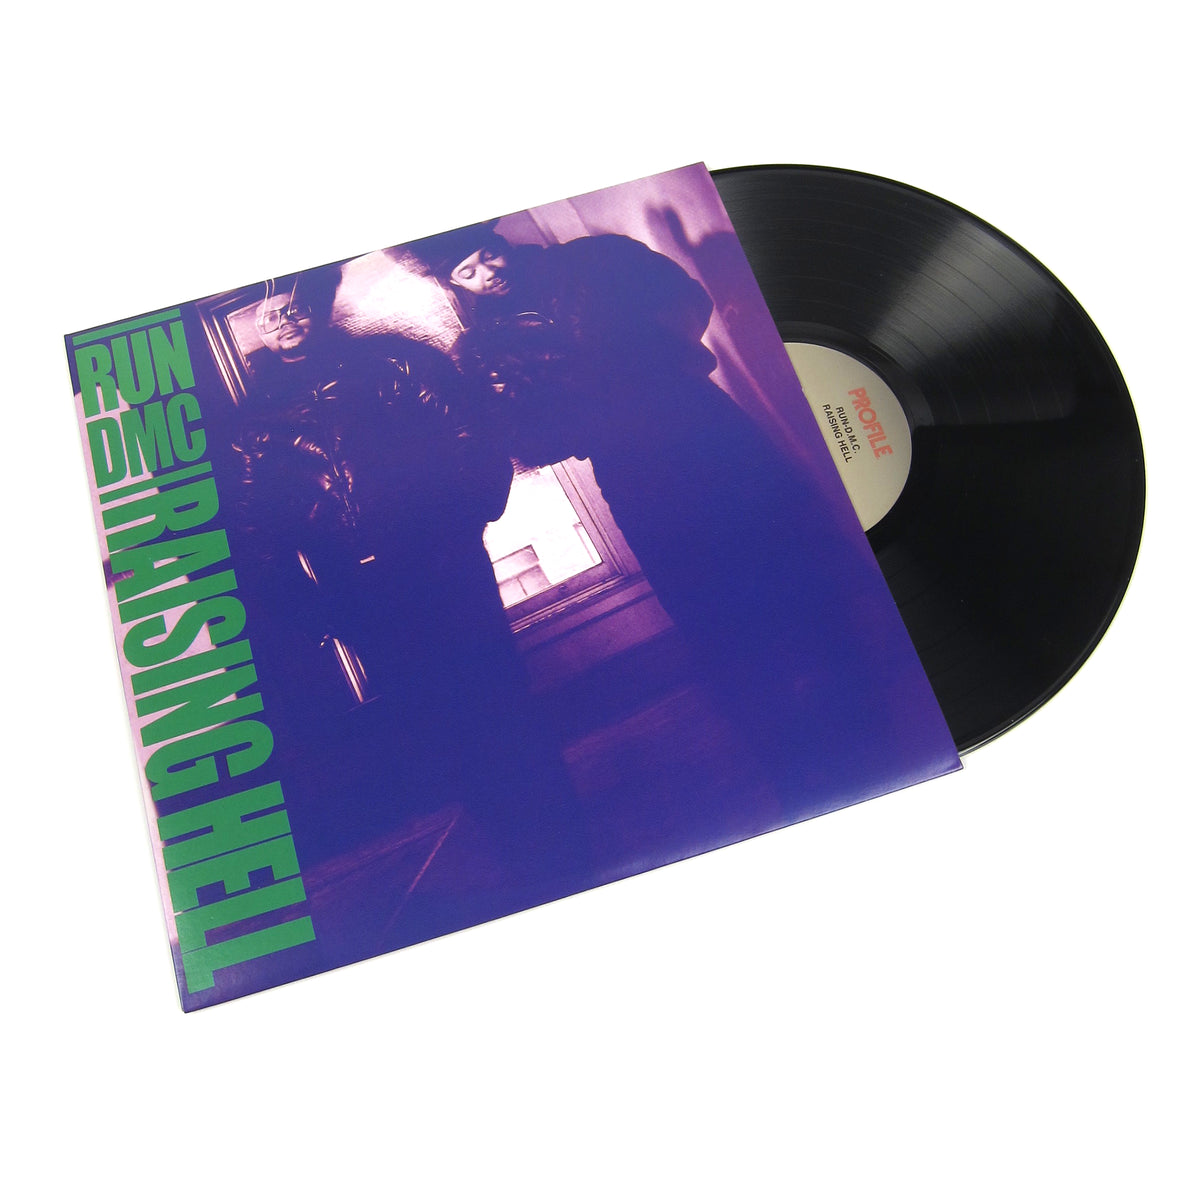 Run DMC: Raising Hell Vinyl LP